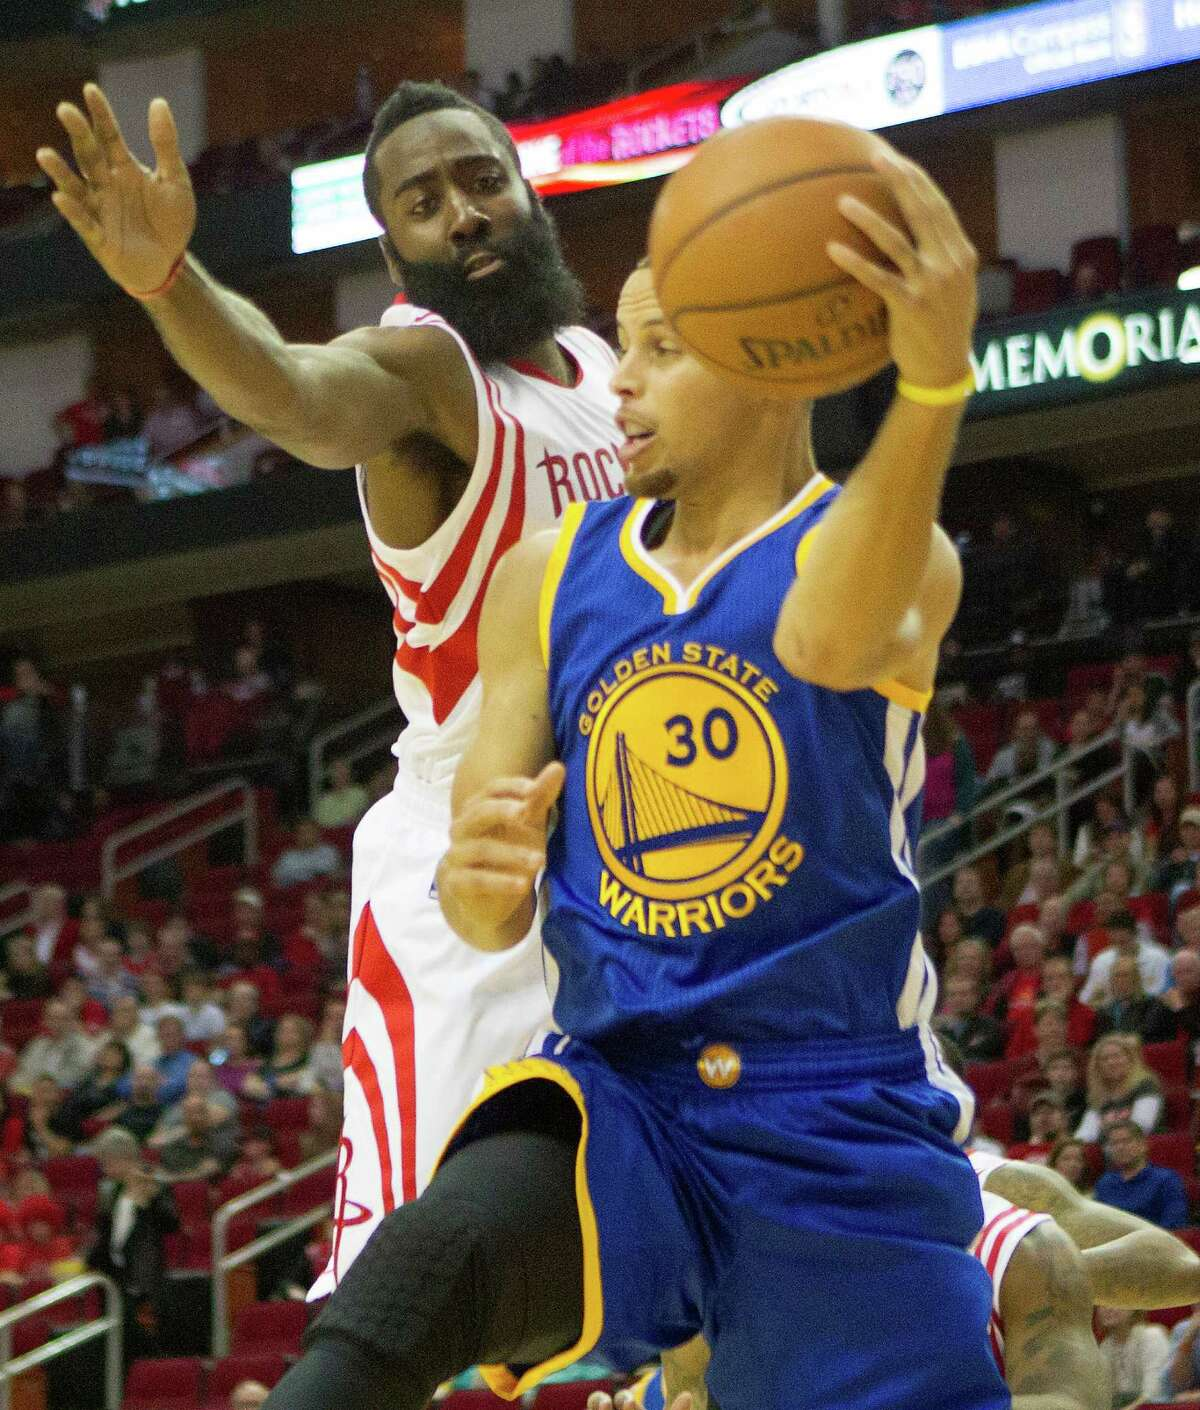 Warriors 98, Rockets 87 When: Nov. 8, 2014 Where: Toyota Center Recap: Stephen Curry (30) burned James Harden and the Rockets for 34 points as the Warriors handed Houston its first loss of the season after a 6-0 start.